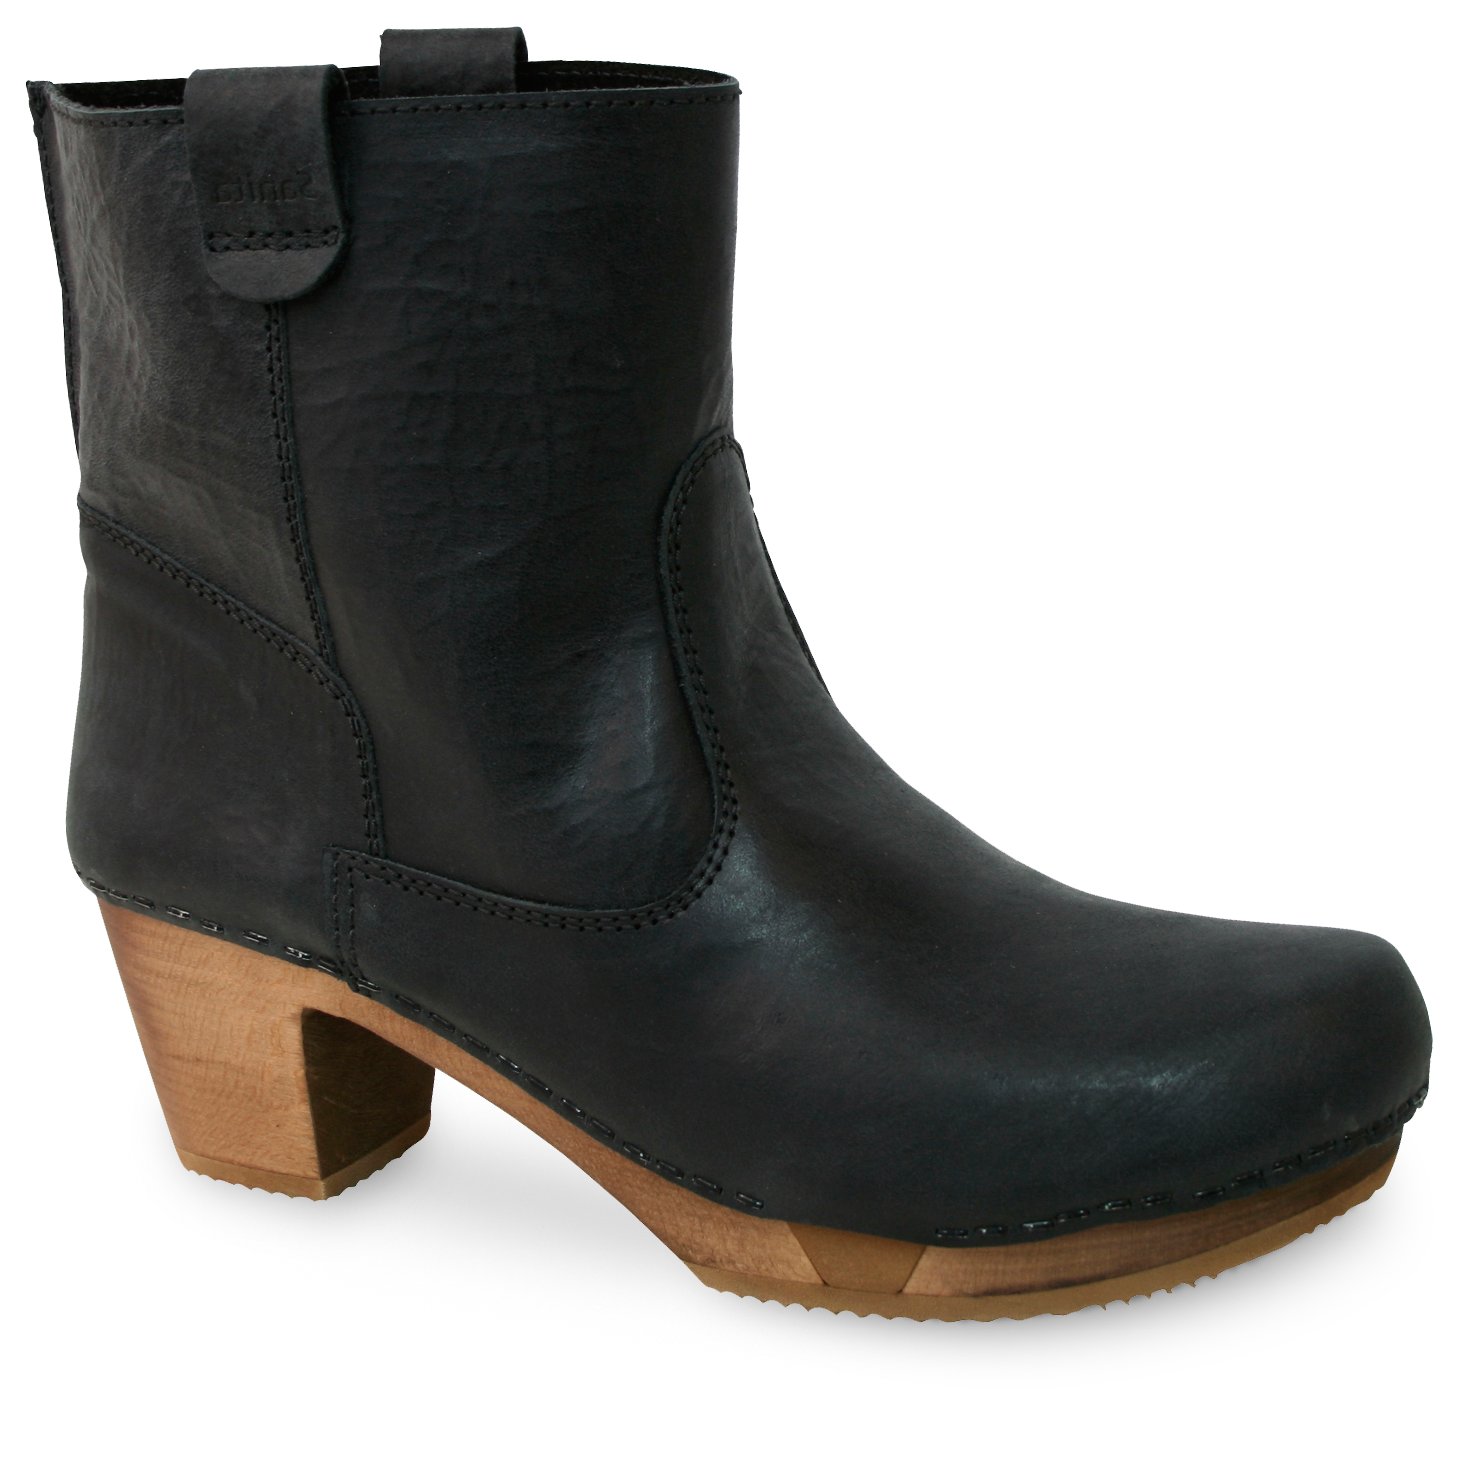 Sanita Juna Women's in Black Boot